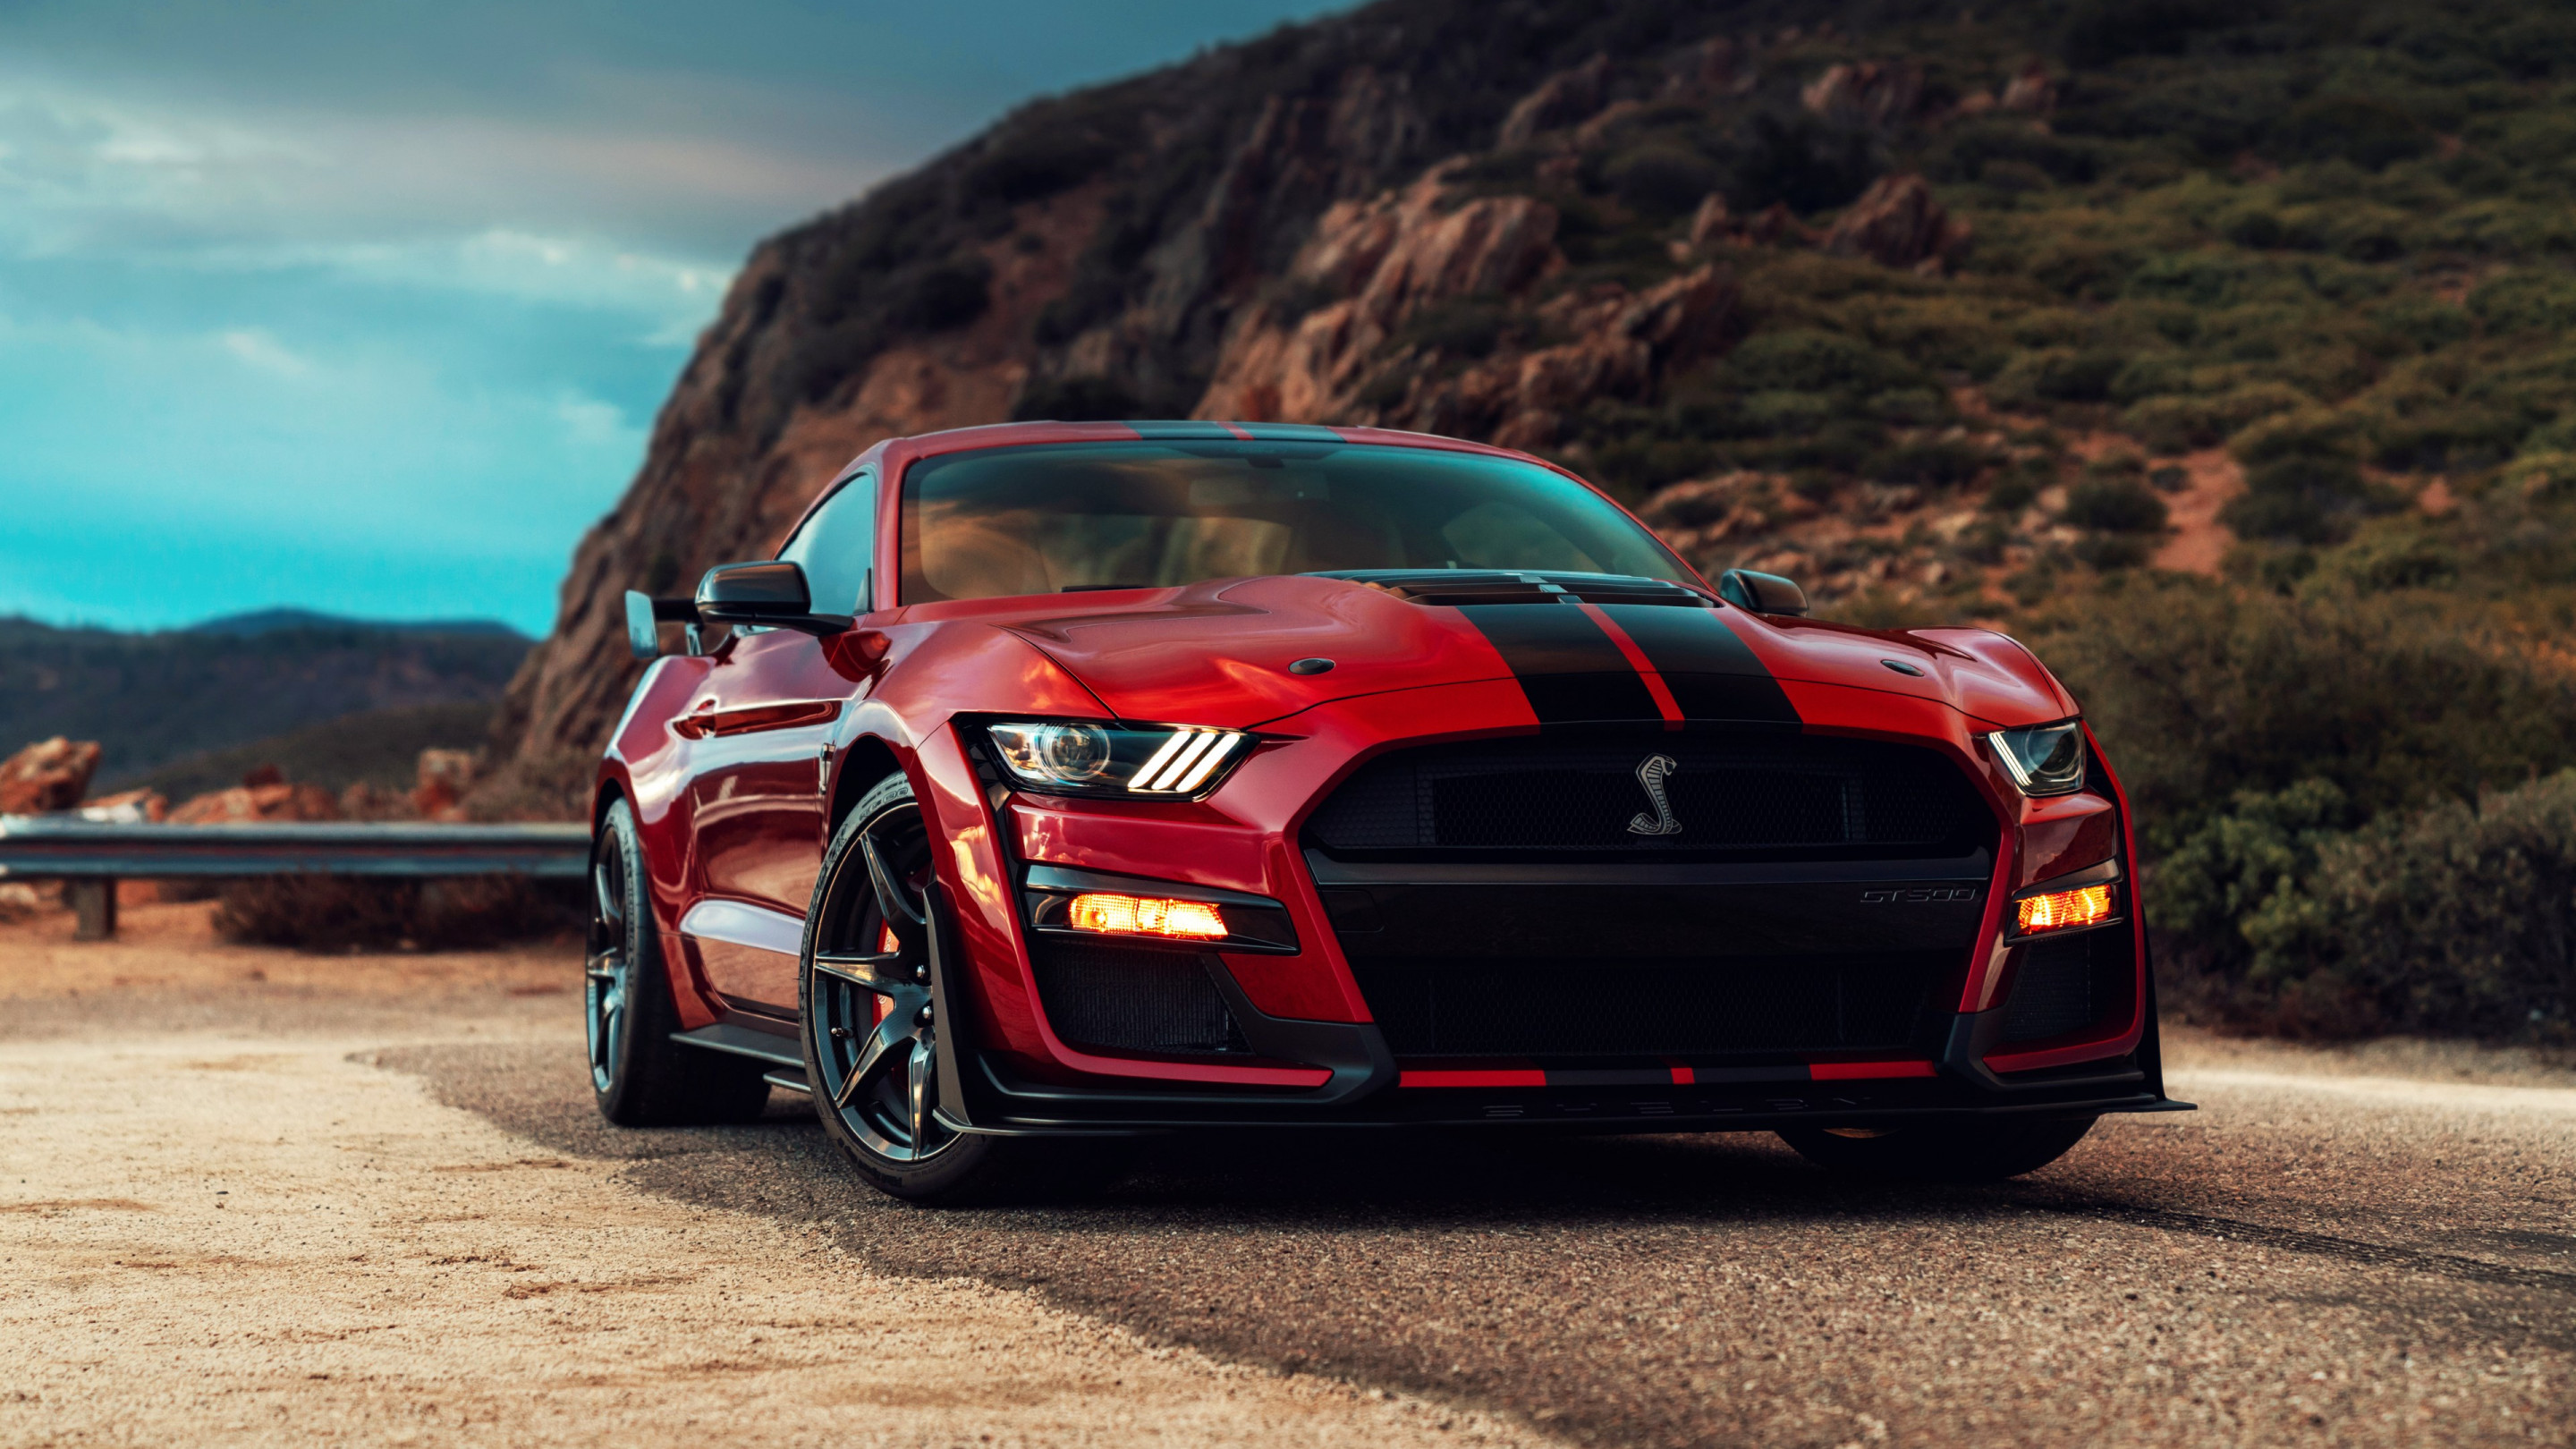 Ford Mustang Shelby GT500 | 2880x1620 wallpaper